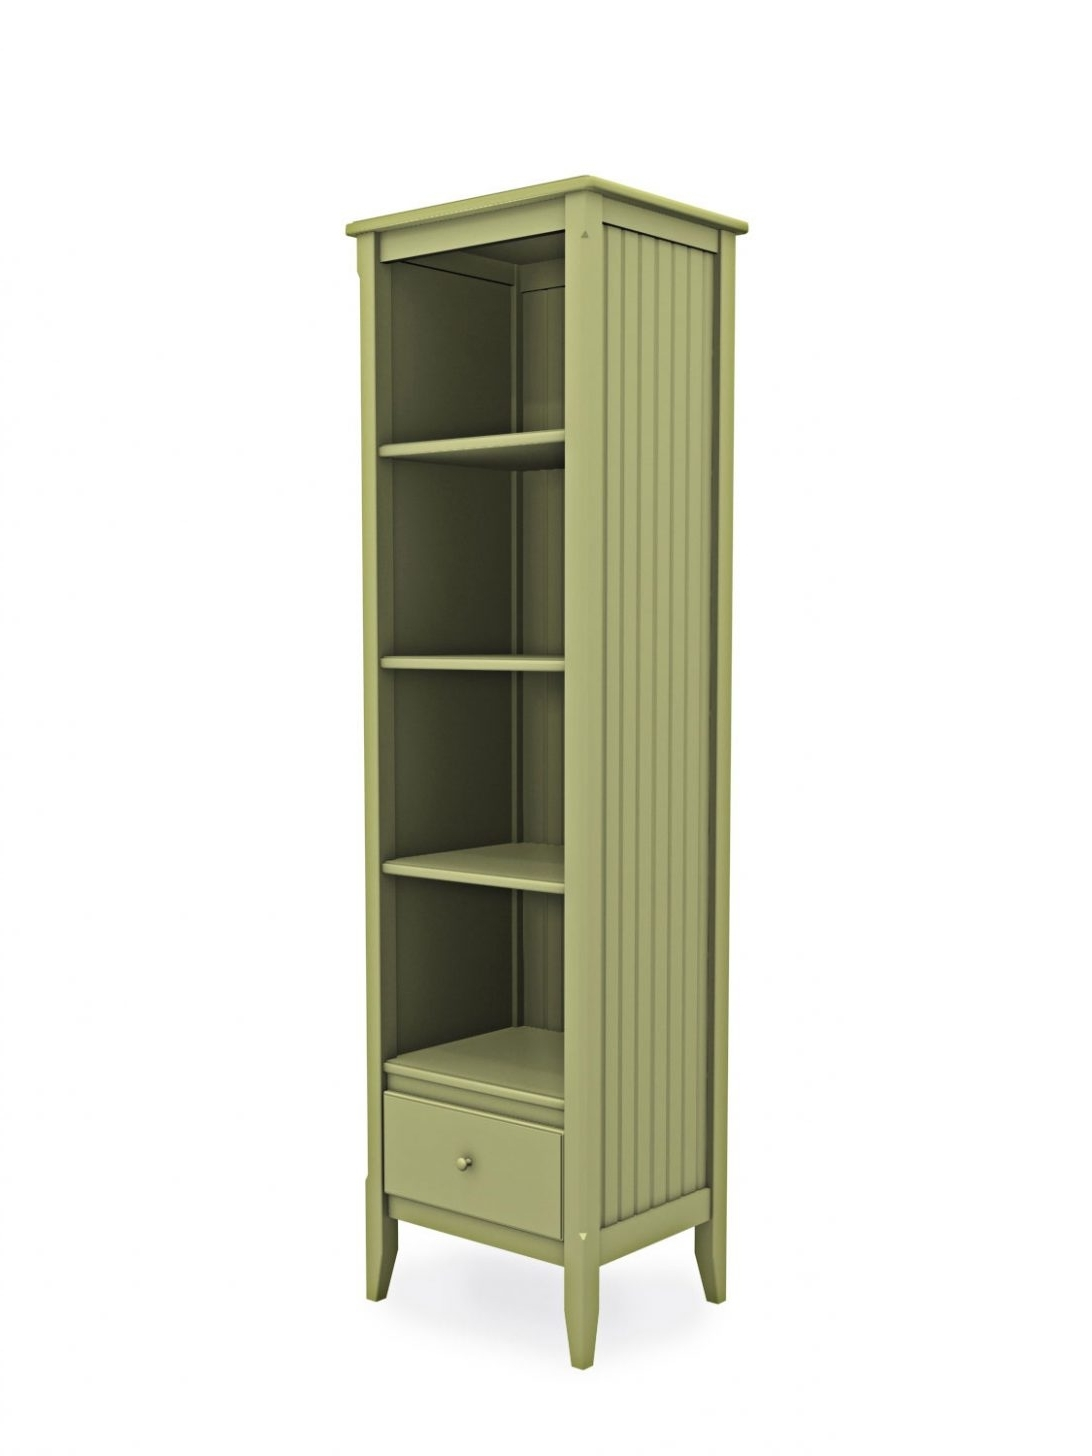 painted sapien tall am bookcases room hartford living shelving system furniture bookcase high